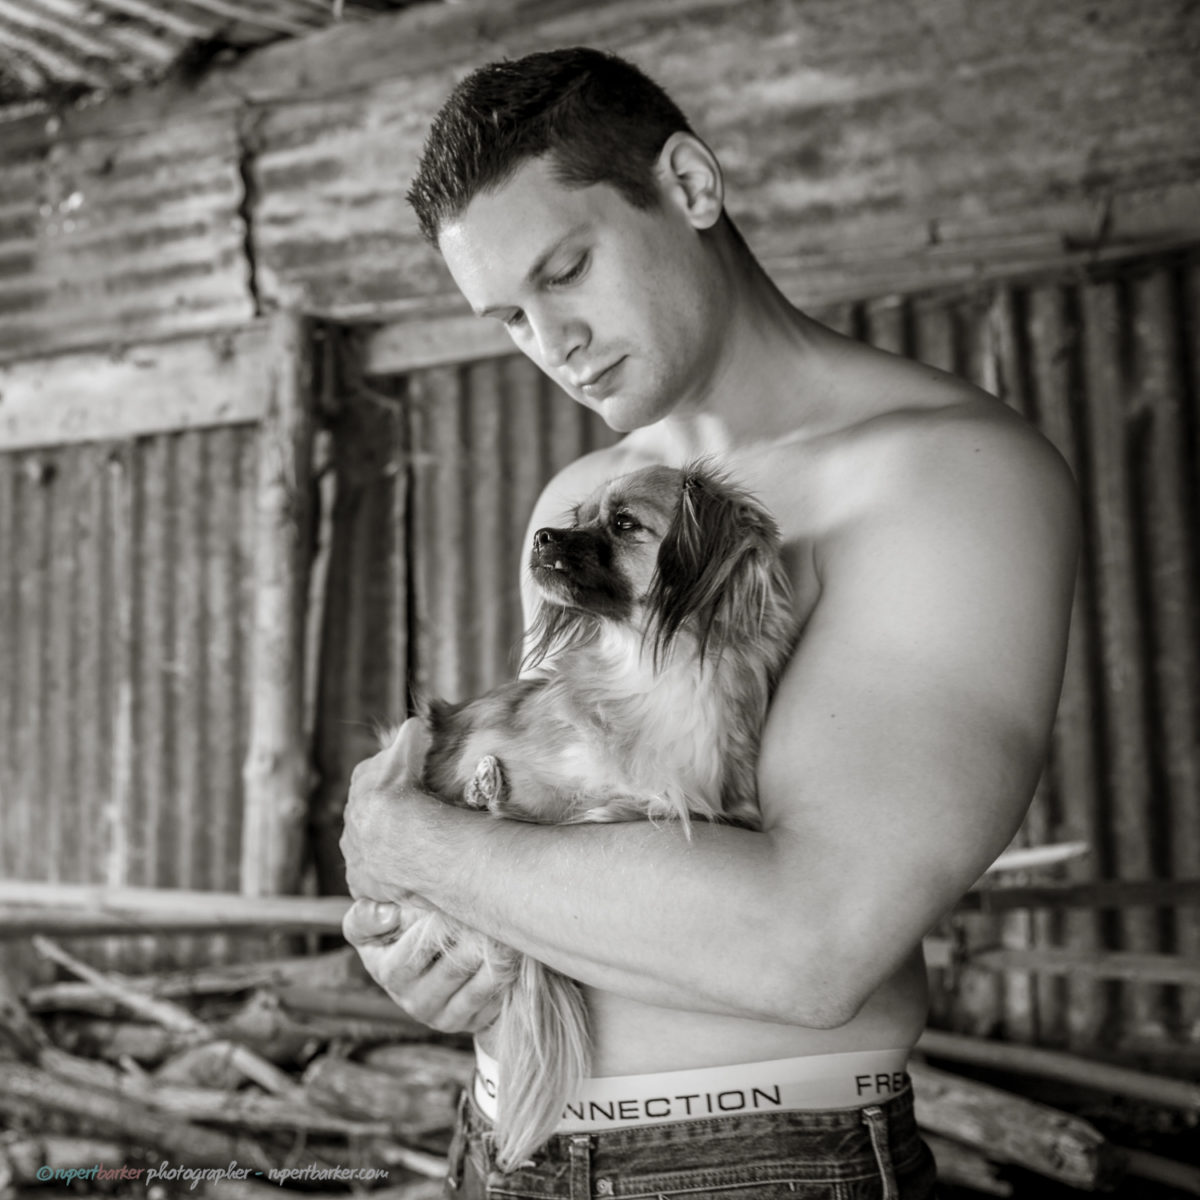 Topless Male Portrait with rescue puppies Black and White Calendar shoot